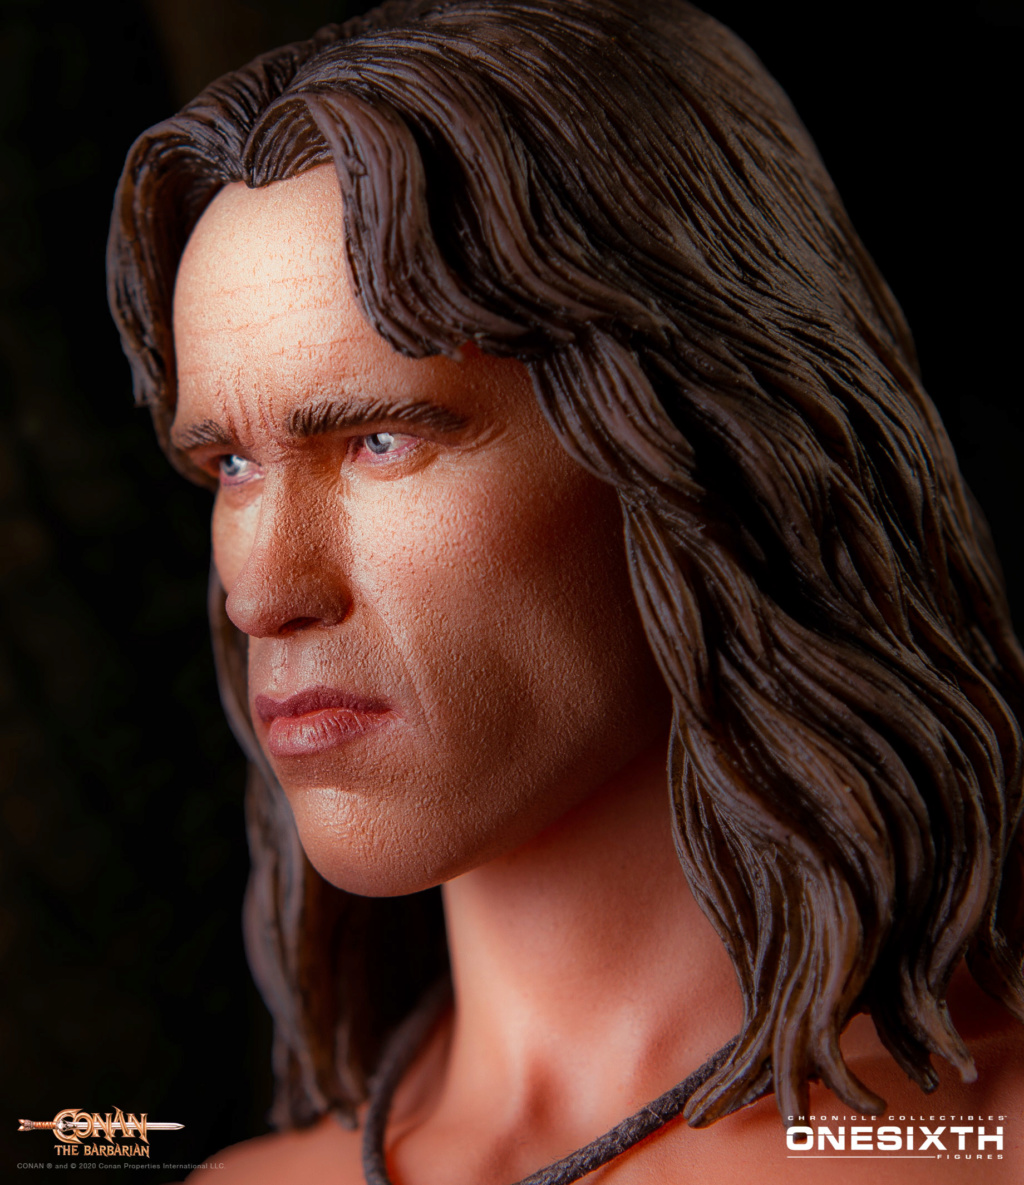 NEW PRODUCT: Chronicle Collectibles: OneSixth Conan the Barbarian Figure Chroni23